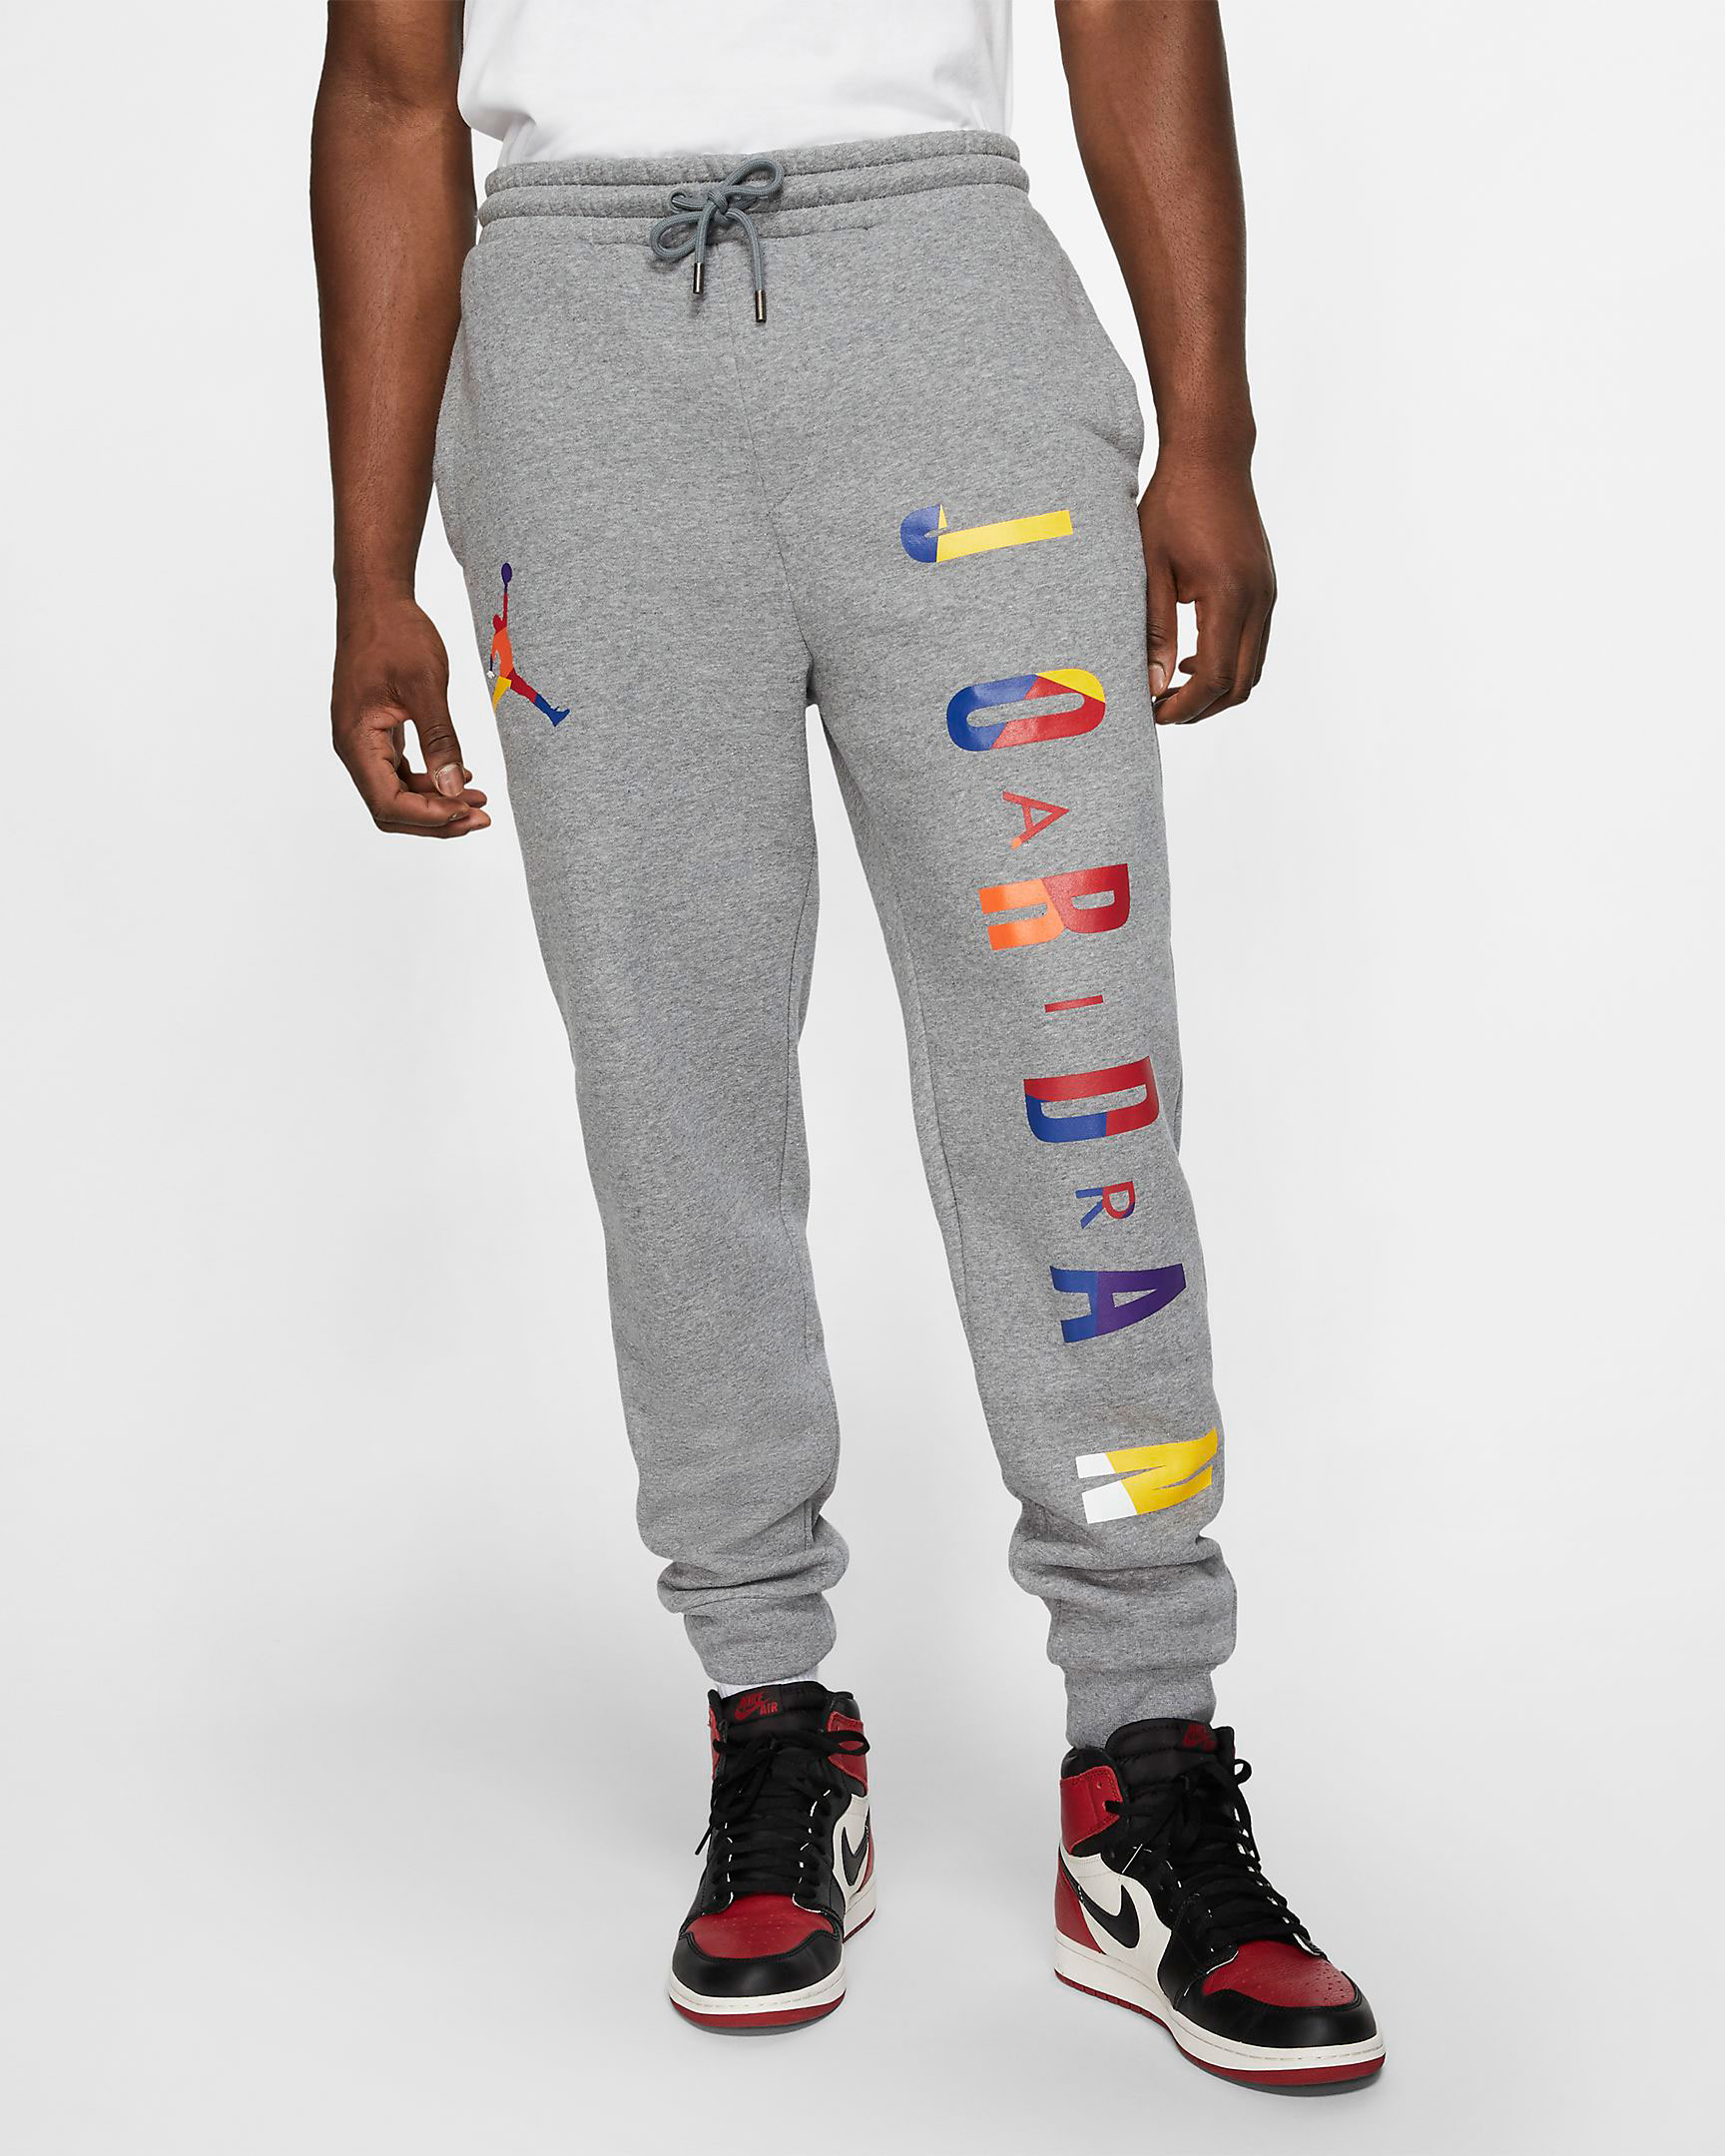 jordan-dna-jogger-pants-grey